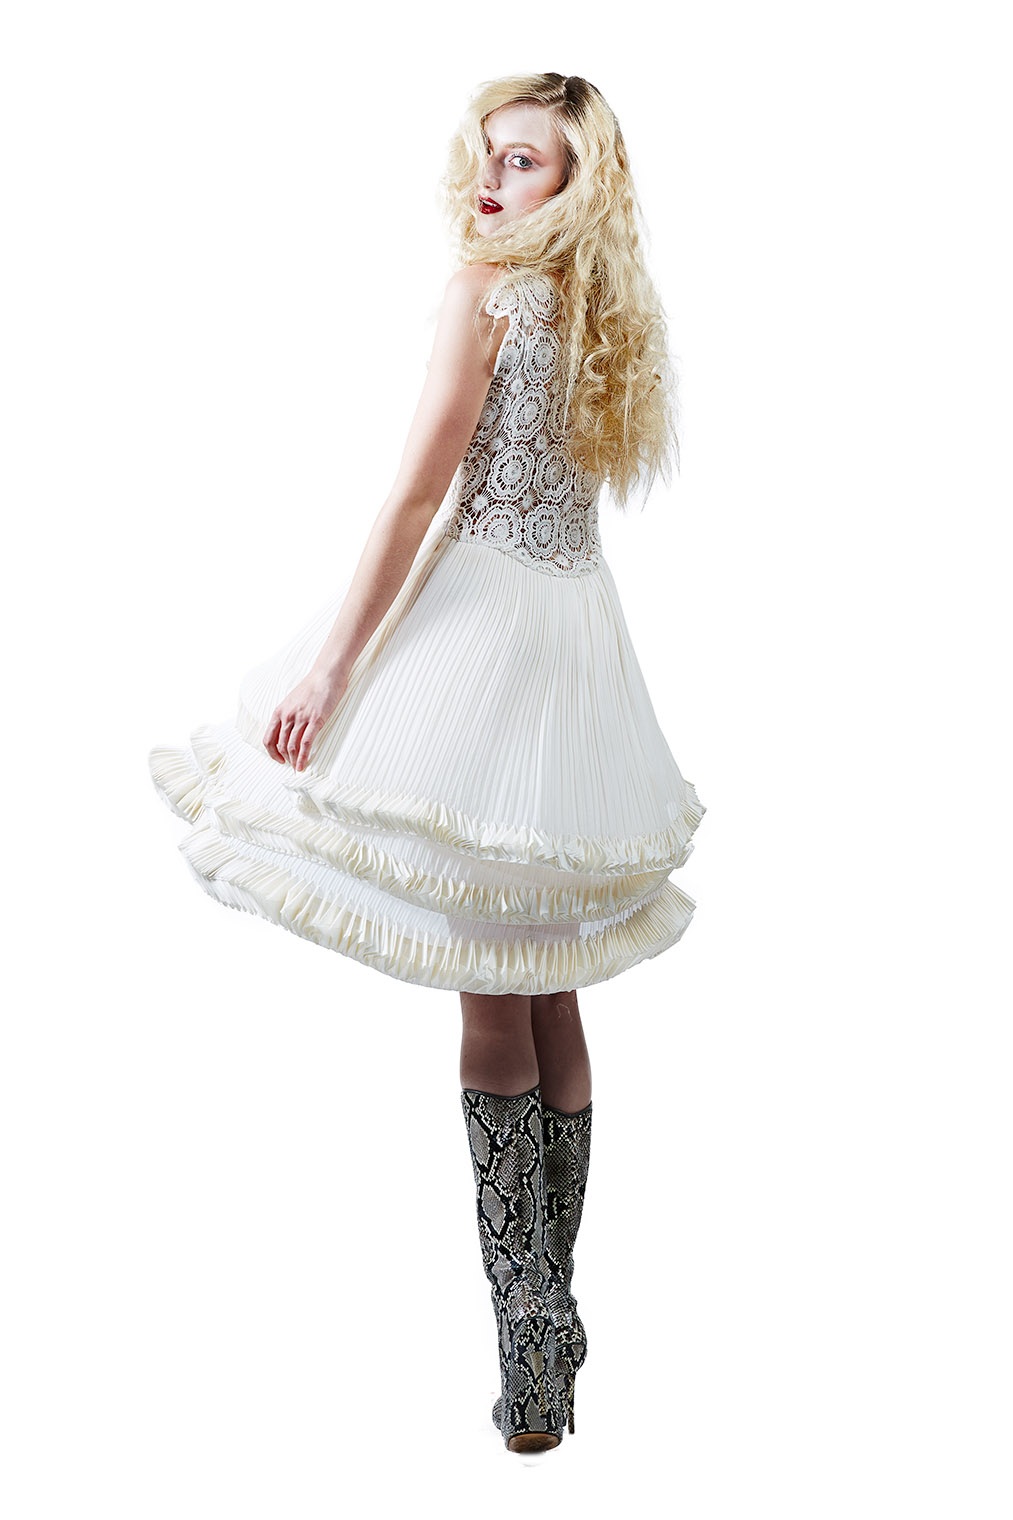 girl in dress with ruche frills turning around with mystery eyes